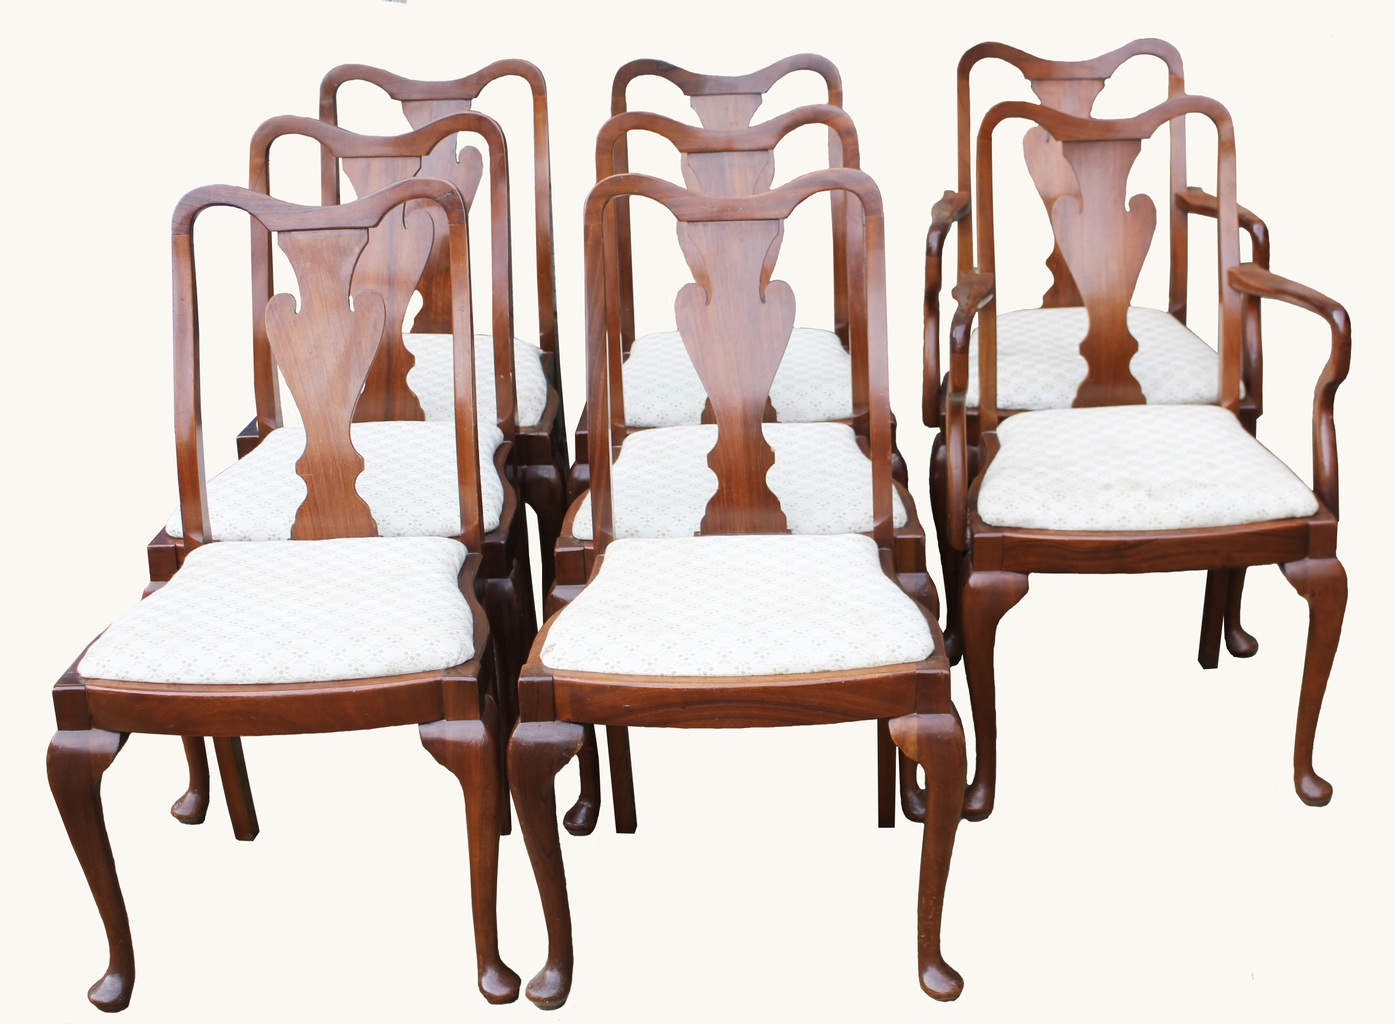 A Set of Walnut Queen Anne Style Dining Chairs – Hogarths Gallery